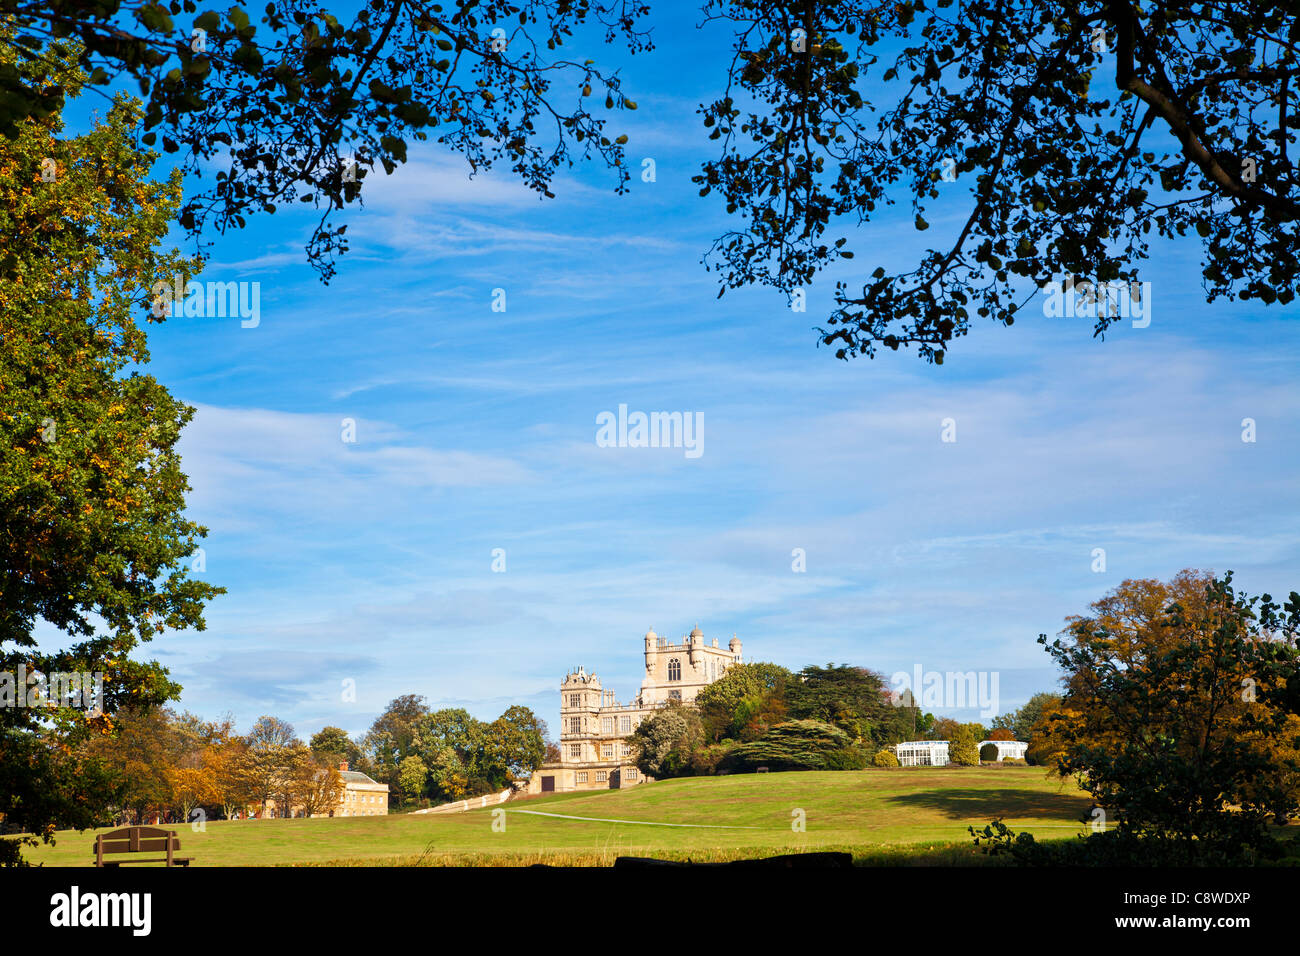 A sunny autumn day at Wollaton Hall and Park, Nottingham, Nottinghamshire, England, UK - Stock Image